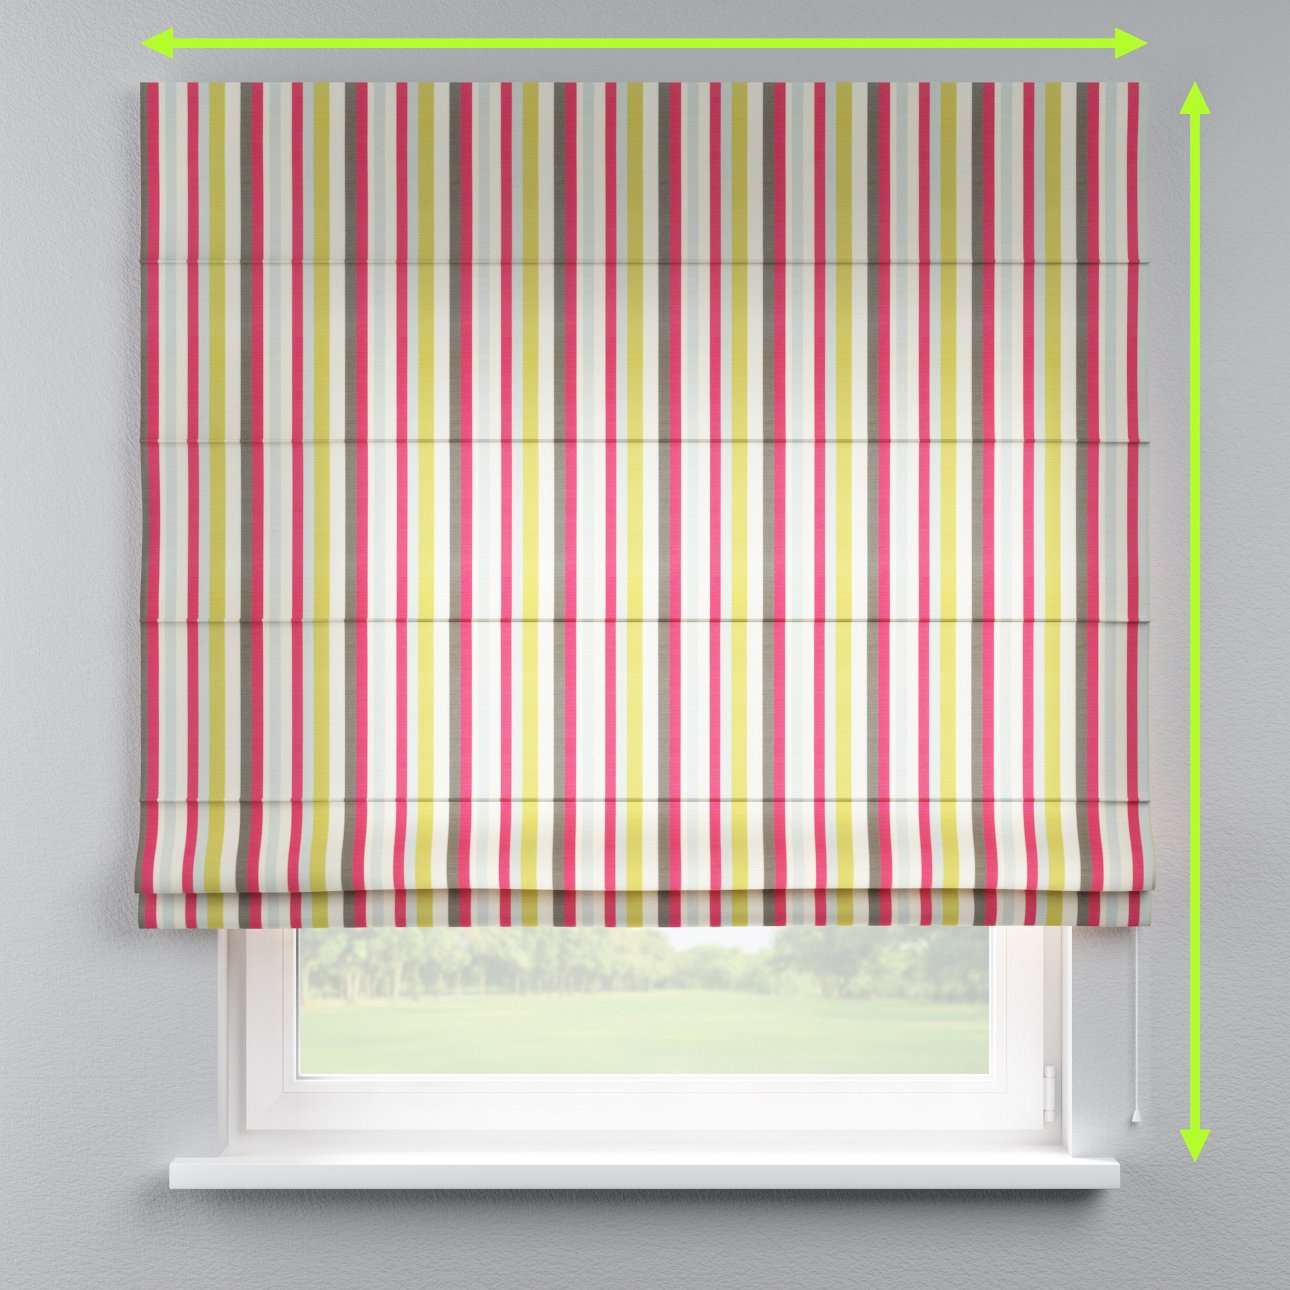 Capri roman blind in collection Flowers, fabric: 140-81